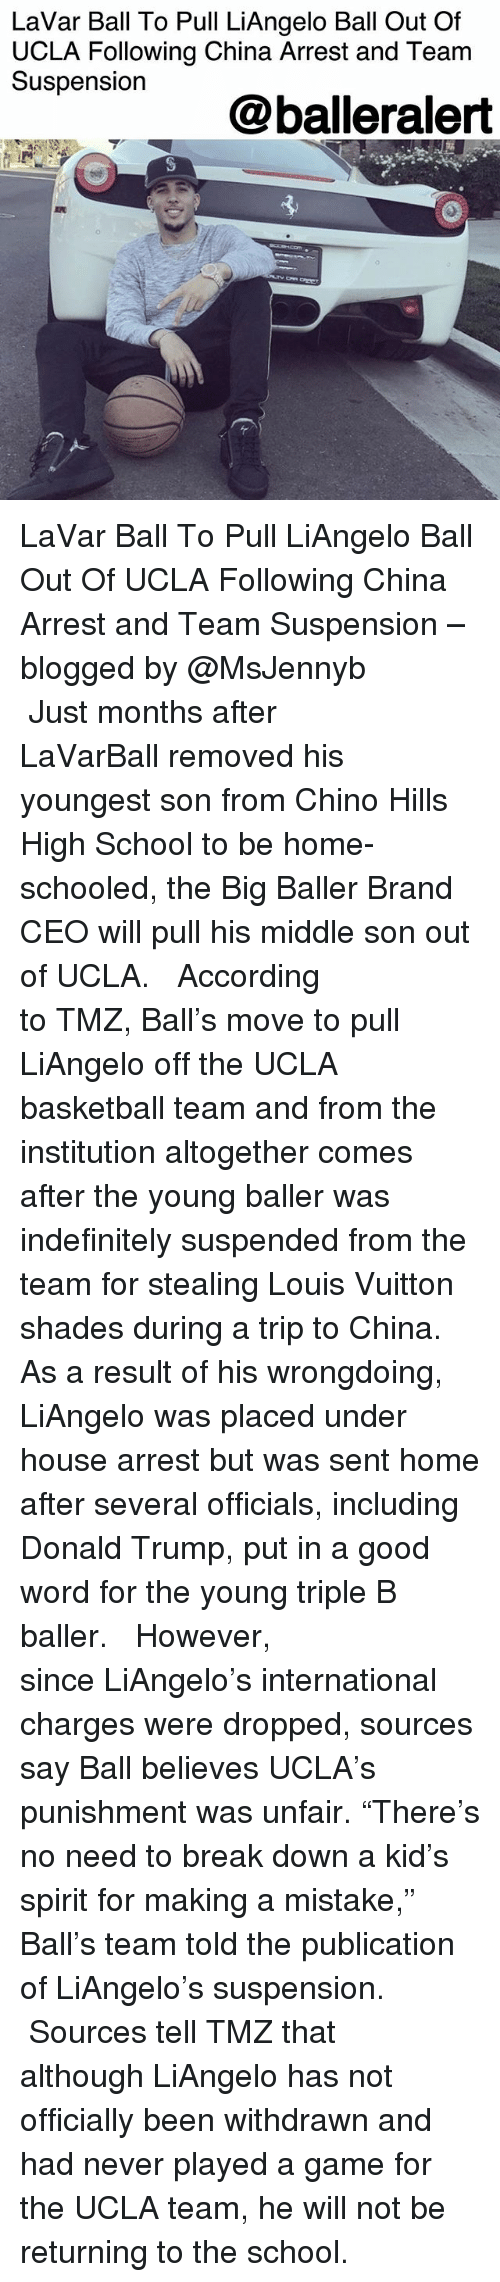 """Basketball, Donald Trump, and Memes: LaVar Ball To Pull LiAngelo Ball Out Of  UCLA Following China Arrest and Team  Suspension  @balleralert LaVar Ball To Pull LiAngelo Ball Out Of UCLA Following China Arrest and Team Suspension – blogged by @MsJennyb ⠀⠀⠀⠀⠀⠀⠀ ⠀⠀⠀⠀⠀⠀⠀ Just months after LaVarBall removed his youngest son from Chino Hills High School to be home-schooled, the Big Baller Brand CEO will pull his middle son out of UCLA. ⠀⠀⠀⠀⠀⠀⠀ ⠀⠀⠀⠀⠀⠀⠀ According to TMZ, Ball's move to pull LiAngelo off the UCLA basketball team and from the institution altogether comes after the young baller was indefinitely suspended from the team for stealing Louis Vuitton shades during a trip to China. As a result of his wrongdoing, LiAngelo was placed under house arrest but was sent home after several officials, including Donald Trump, put in a good word for the young triple B baller. ⠀⠀⠀⠀⠀⠀⠀ ⠀⠀⠀⠀⠀⠀⠀ However, since LiAngelo's international charges were dropped, sources say Ball believes UCLA's punishment was unfair. """"There's no need to break down a kid's spirit for making a mistake,"""" Ball's team told the publication of LiAngelo's suspension. ⠀⠀⠀⠀⠀⠀⠀ ⠀⠀⠀⠀⠀⠀⠀ Sources tell TMZ that although LiAngelo has not officially been withdrawn and had never played a game for the UCLA team, he will not be returning to the school."""